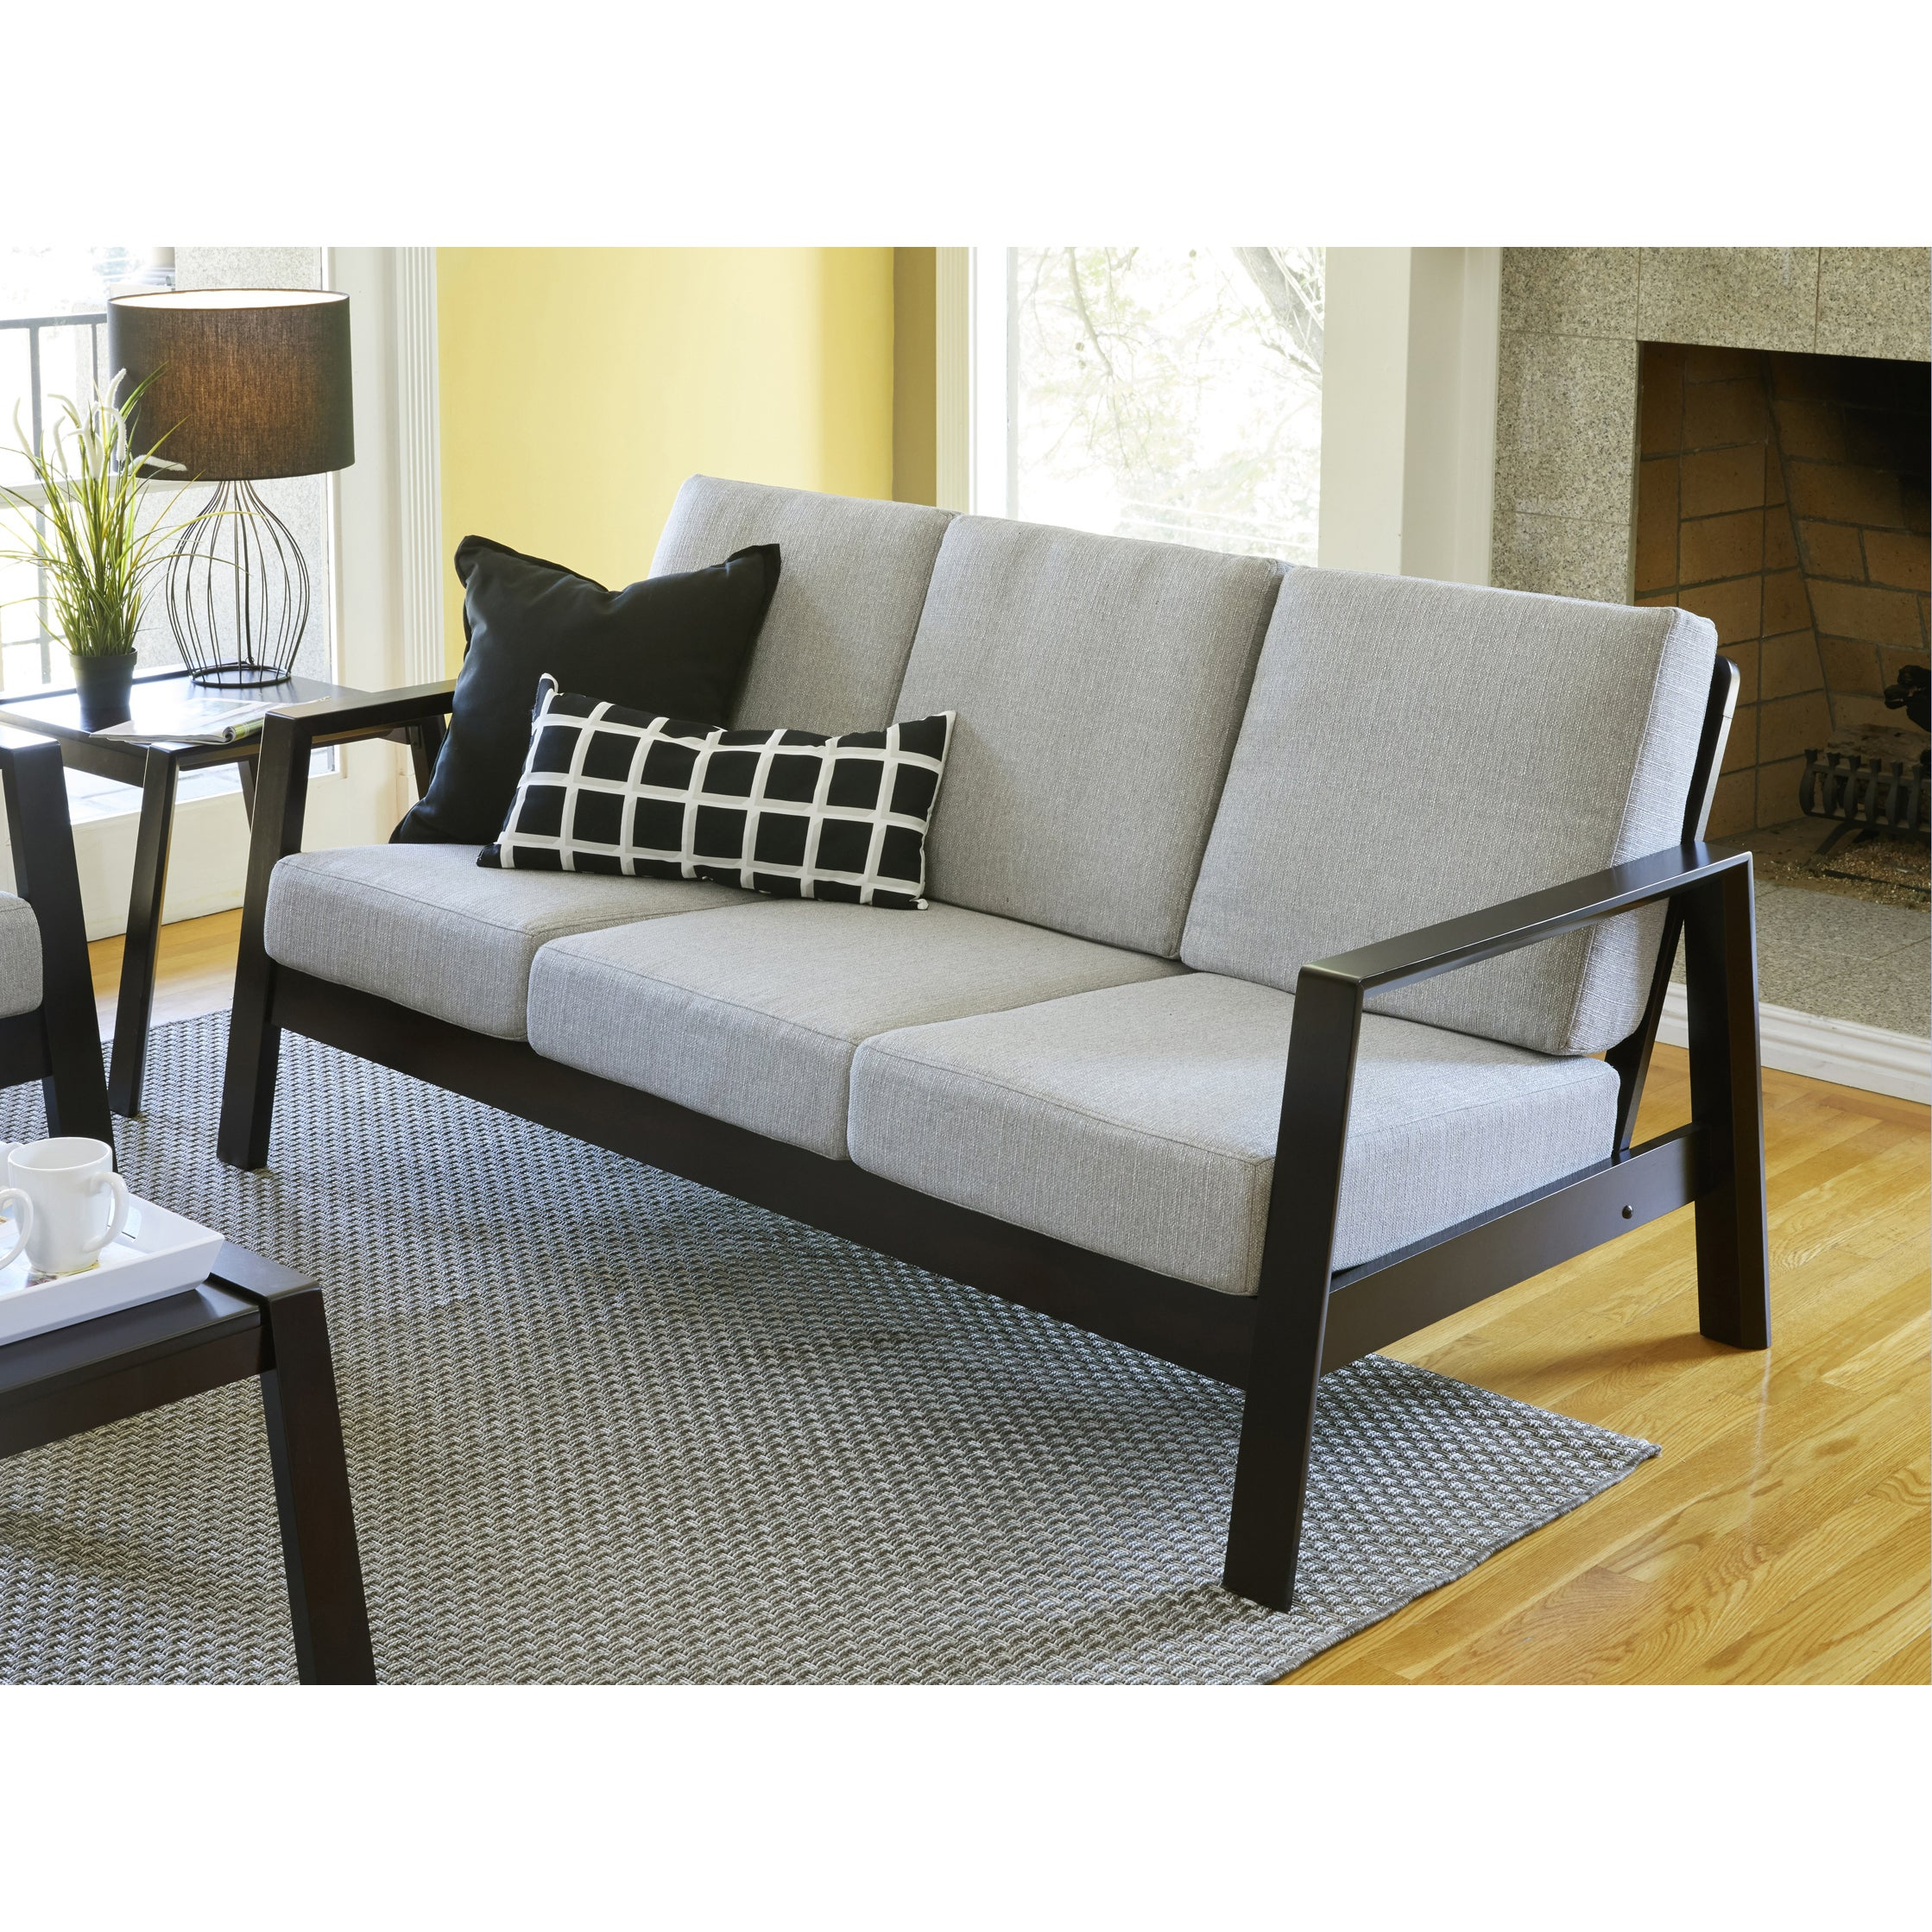 Handy living columbus mid century modern dove grey linen sofa with exposed wood frame